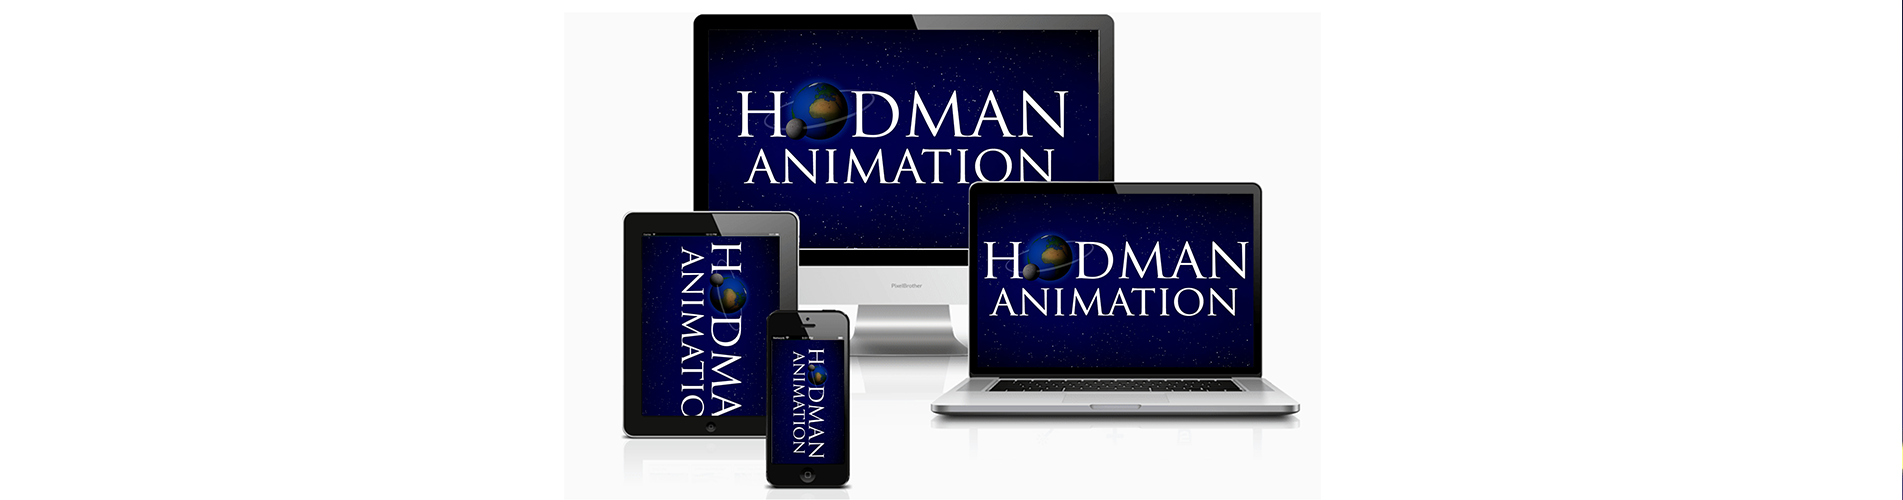 Hodman Animation logo on different devices